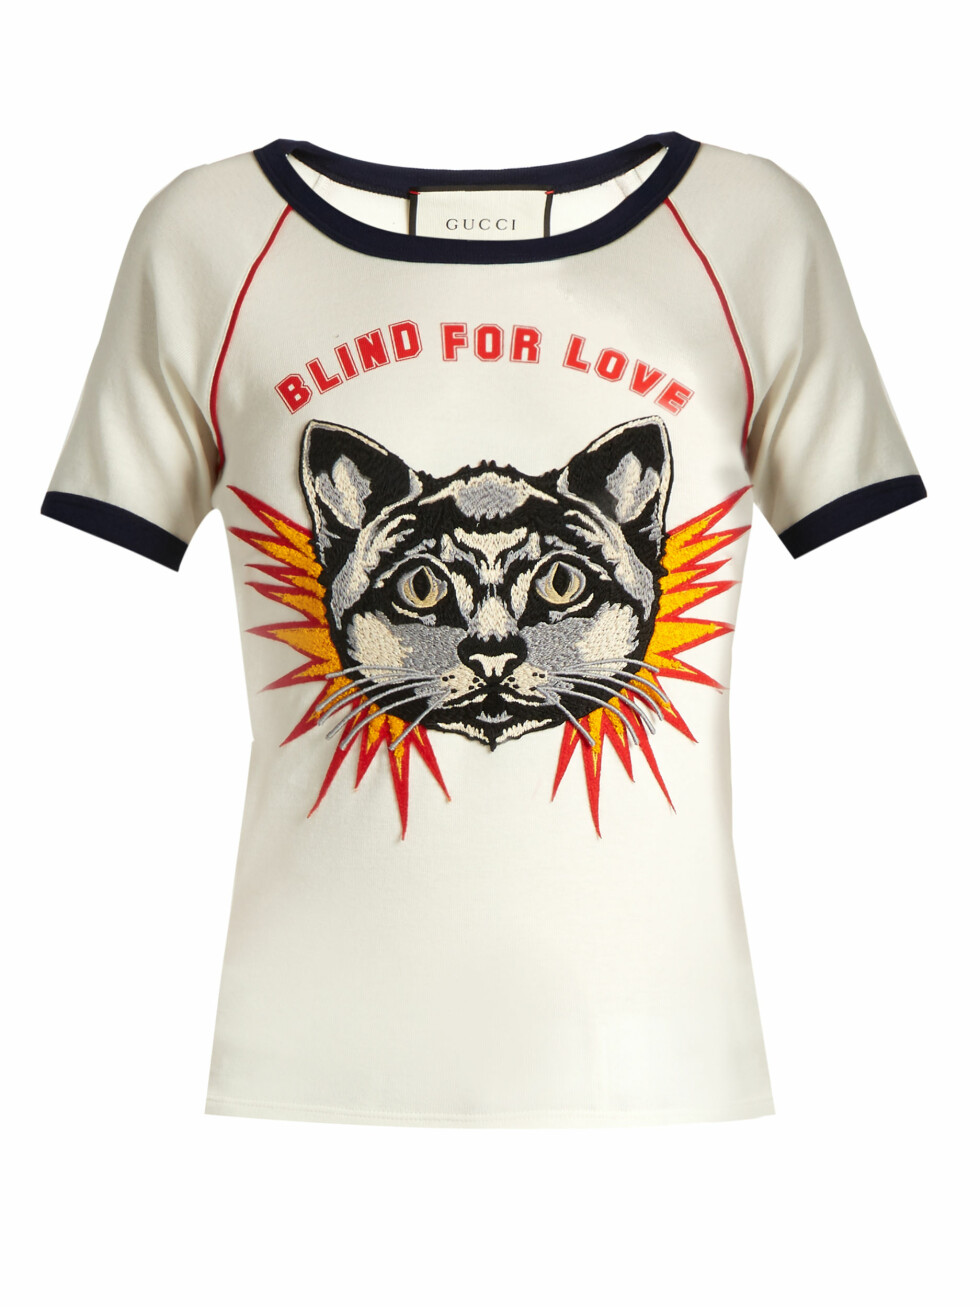 T-skjorte fra Gucci via Matchesfashion.com | kr 5175 | http://www.matchesfashion.com/intl/products/Gucci-Blind-for-Love-print-cotton-jersey-T-shirt--1074854